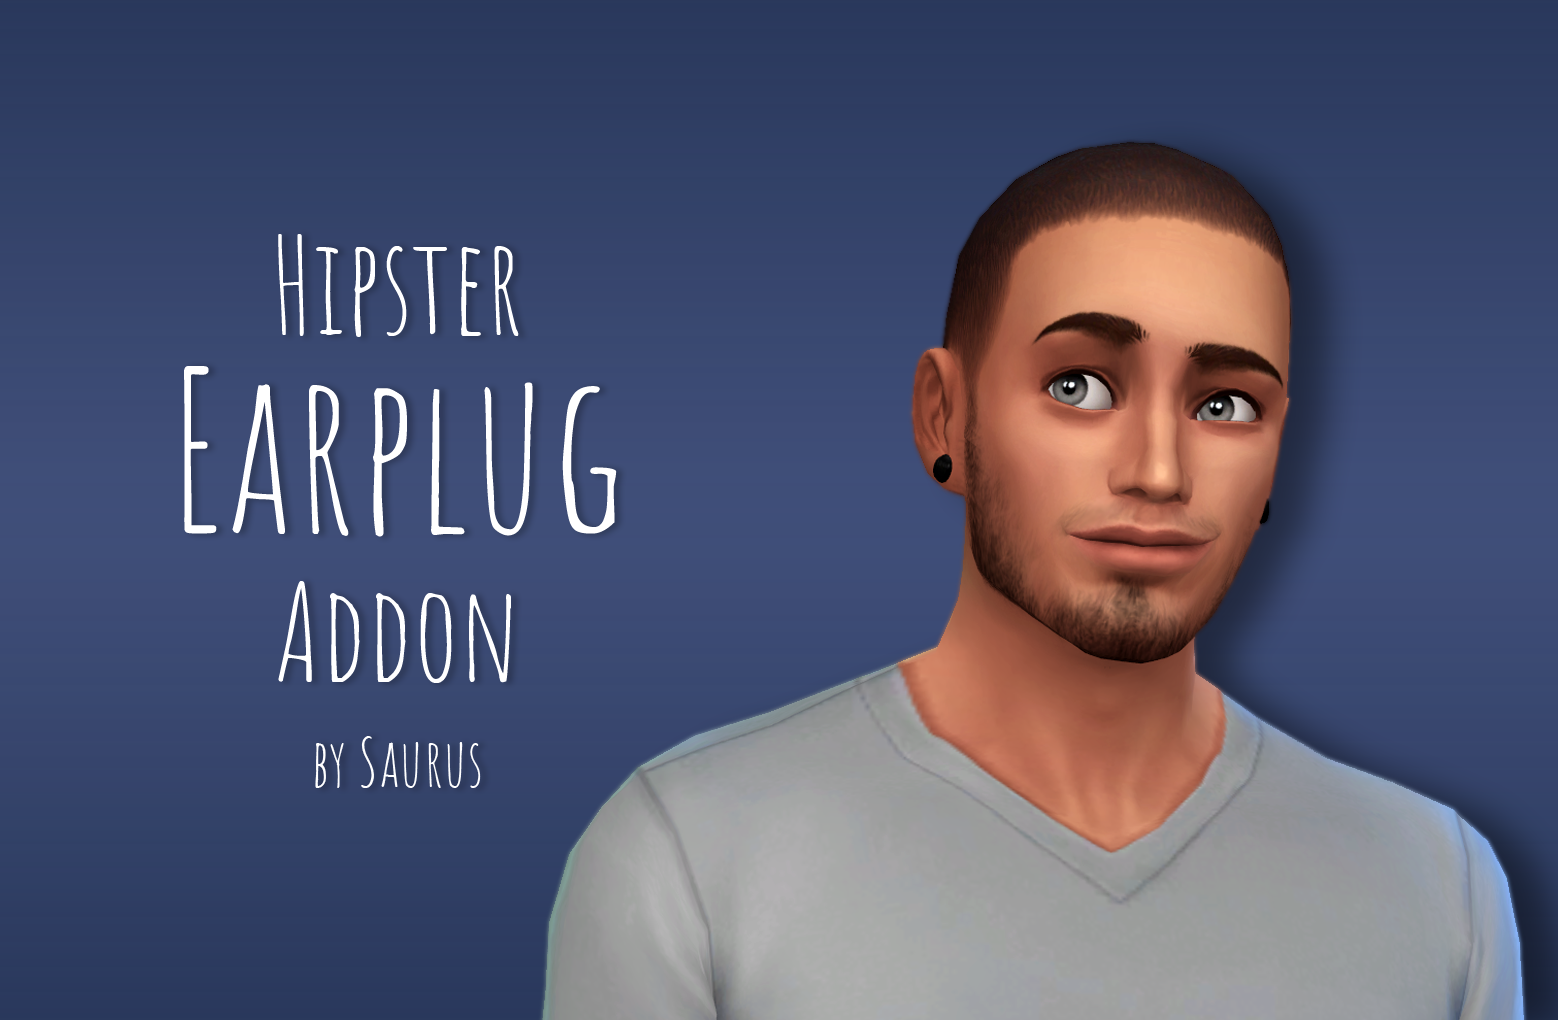 Mod The Sims - Hipster Earplug Addon | The sims 5@4 | Sims, Sims